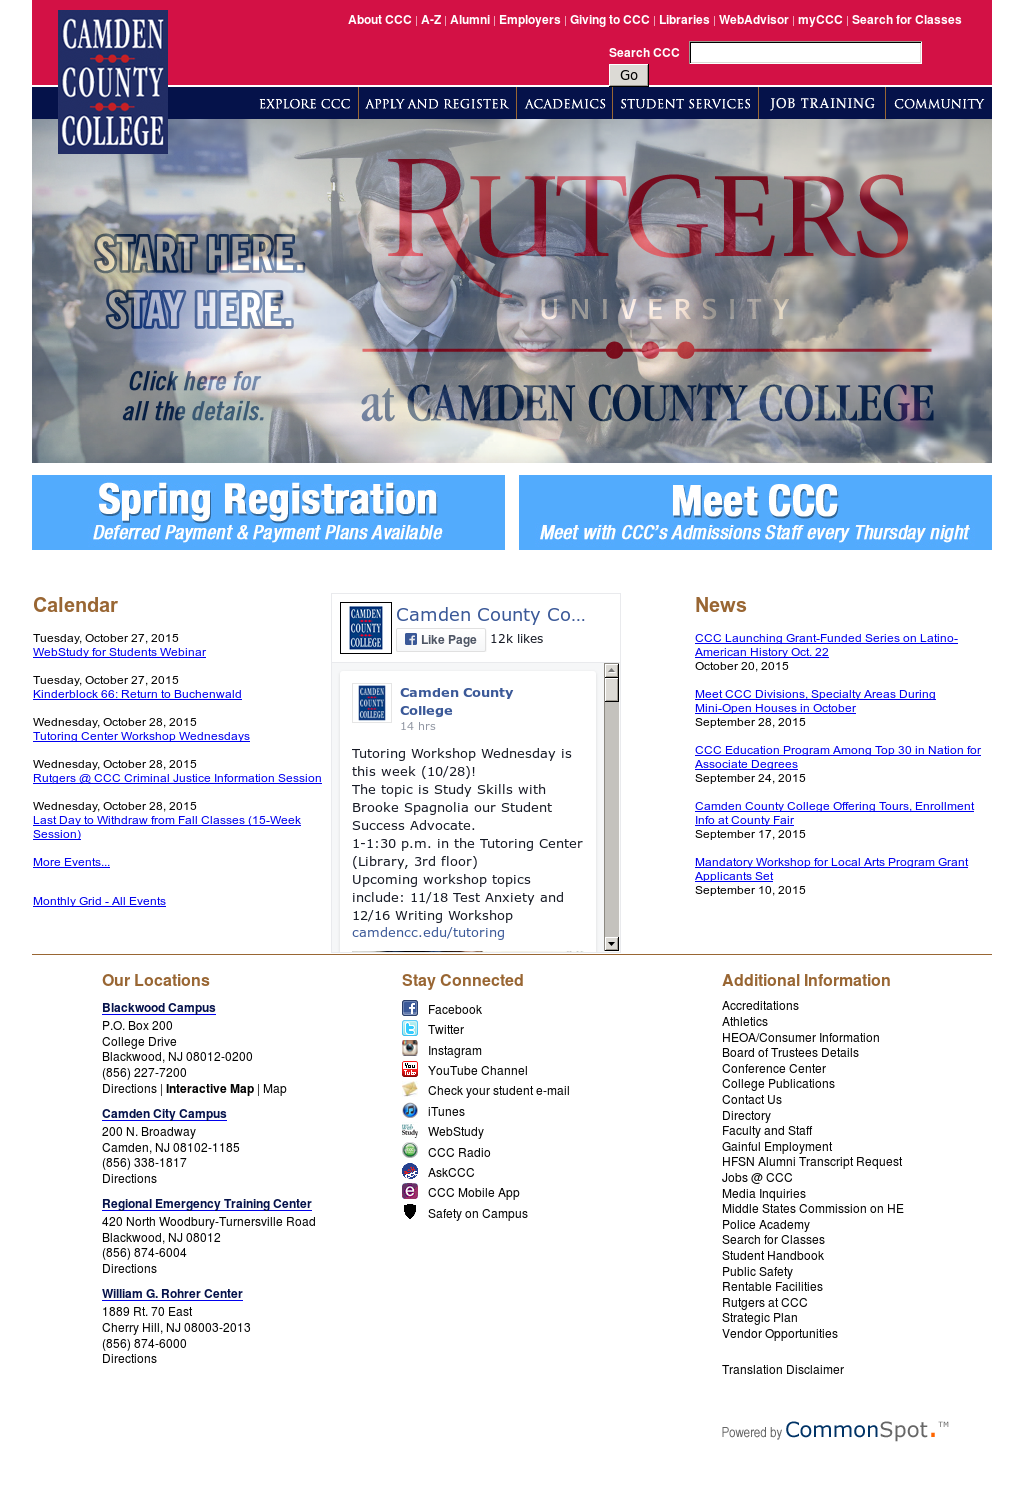 Camden County College Compeors, Revenue and Employees ... on manor college map, cayuga community college map, schenectady community college map, woodbury college map, western technical college map, corning community college map, bloomfield college map, city college of san francisco map, cloud county community college map, davidson county community college campus map, henderson community college map, cleveland community college map, folsom college map, clinton community college map, montgomery county college map, nassau community college building map, saint peter's university map, rutgers university college map, butler community college map, atlantic cape community college map,